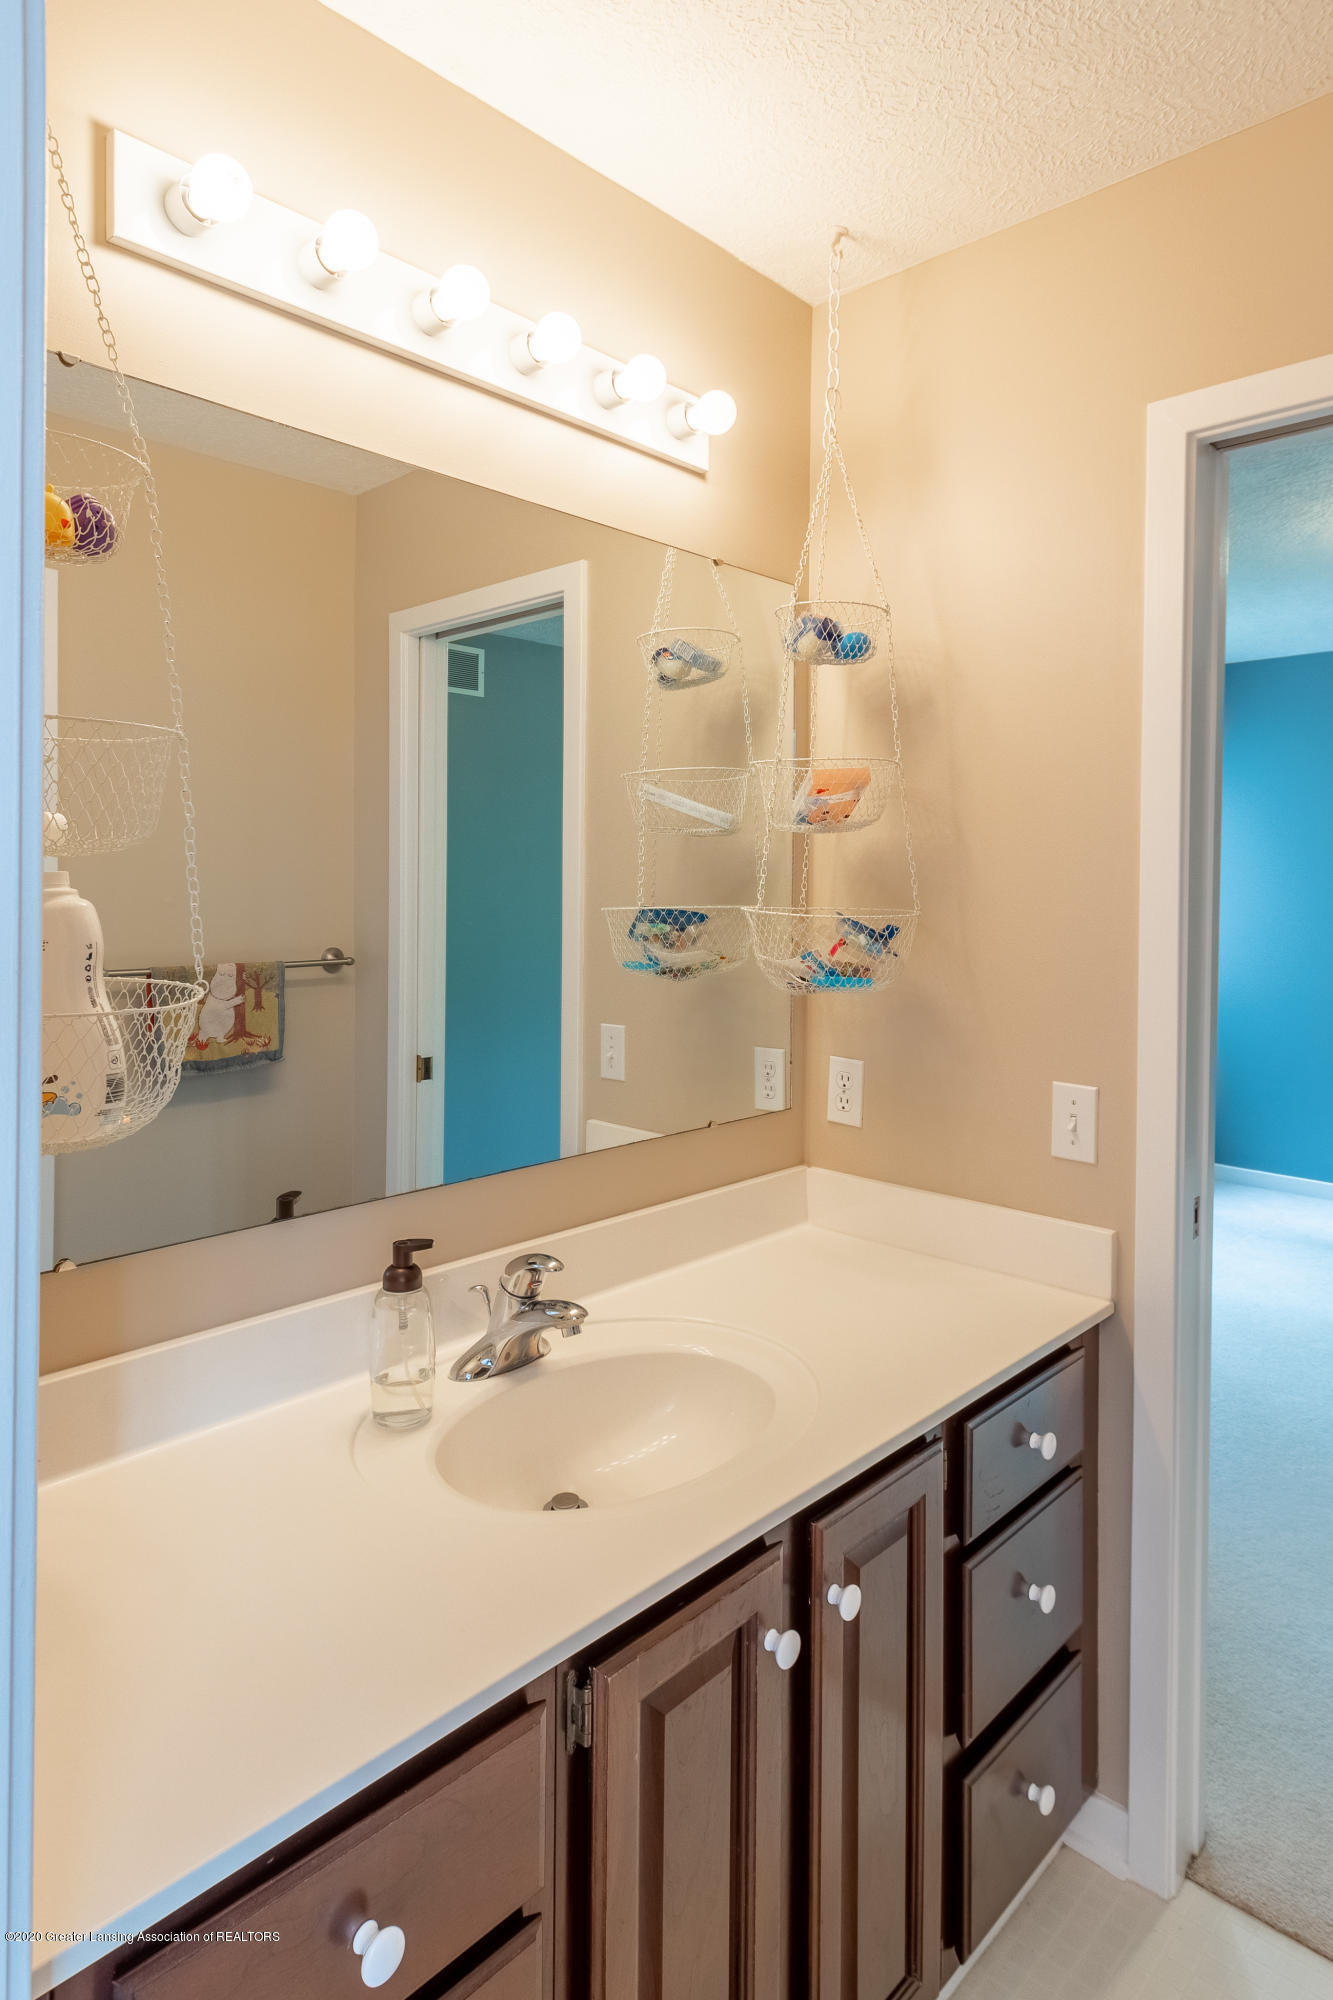 3668 Fairhills Dr - Full Bathroom - 60